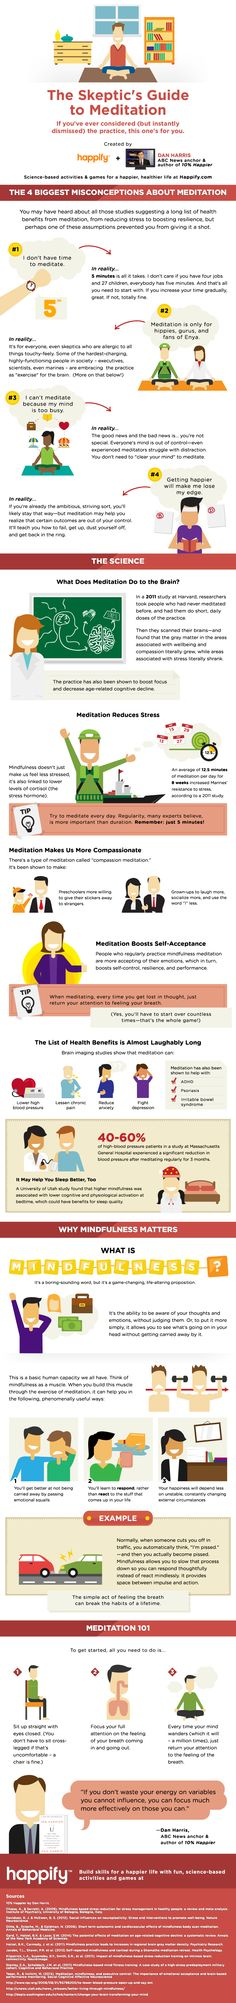 Are You Skeptical About Meditation? Here's Everything You Need To Know!